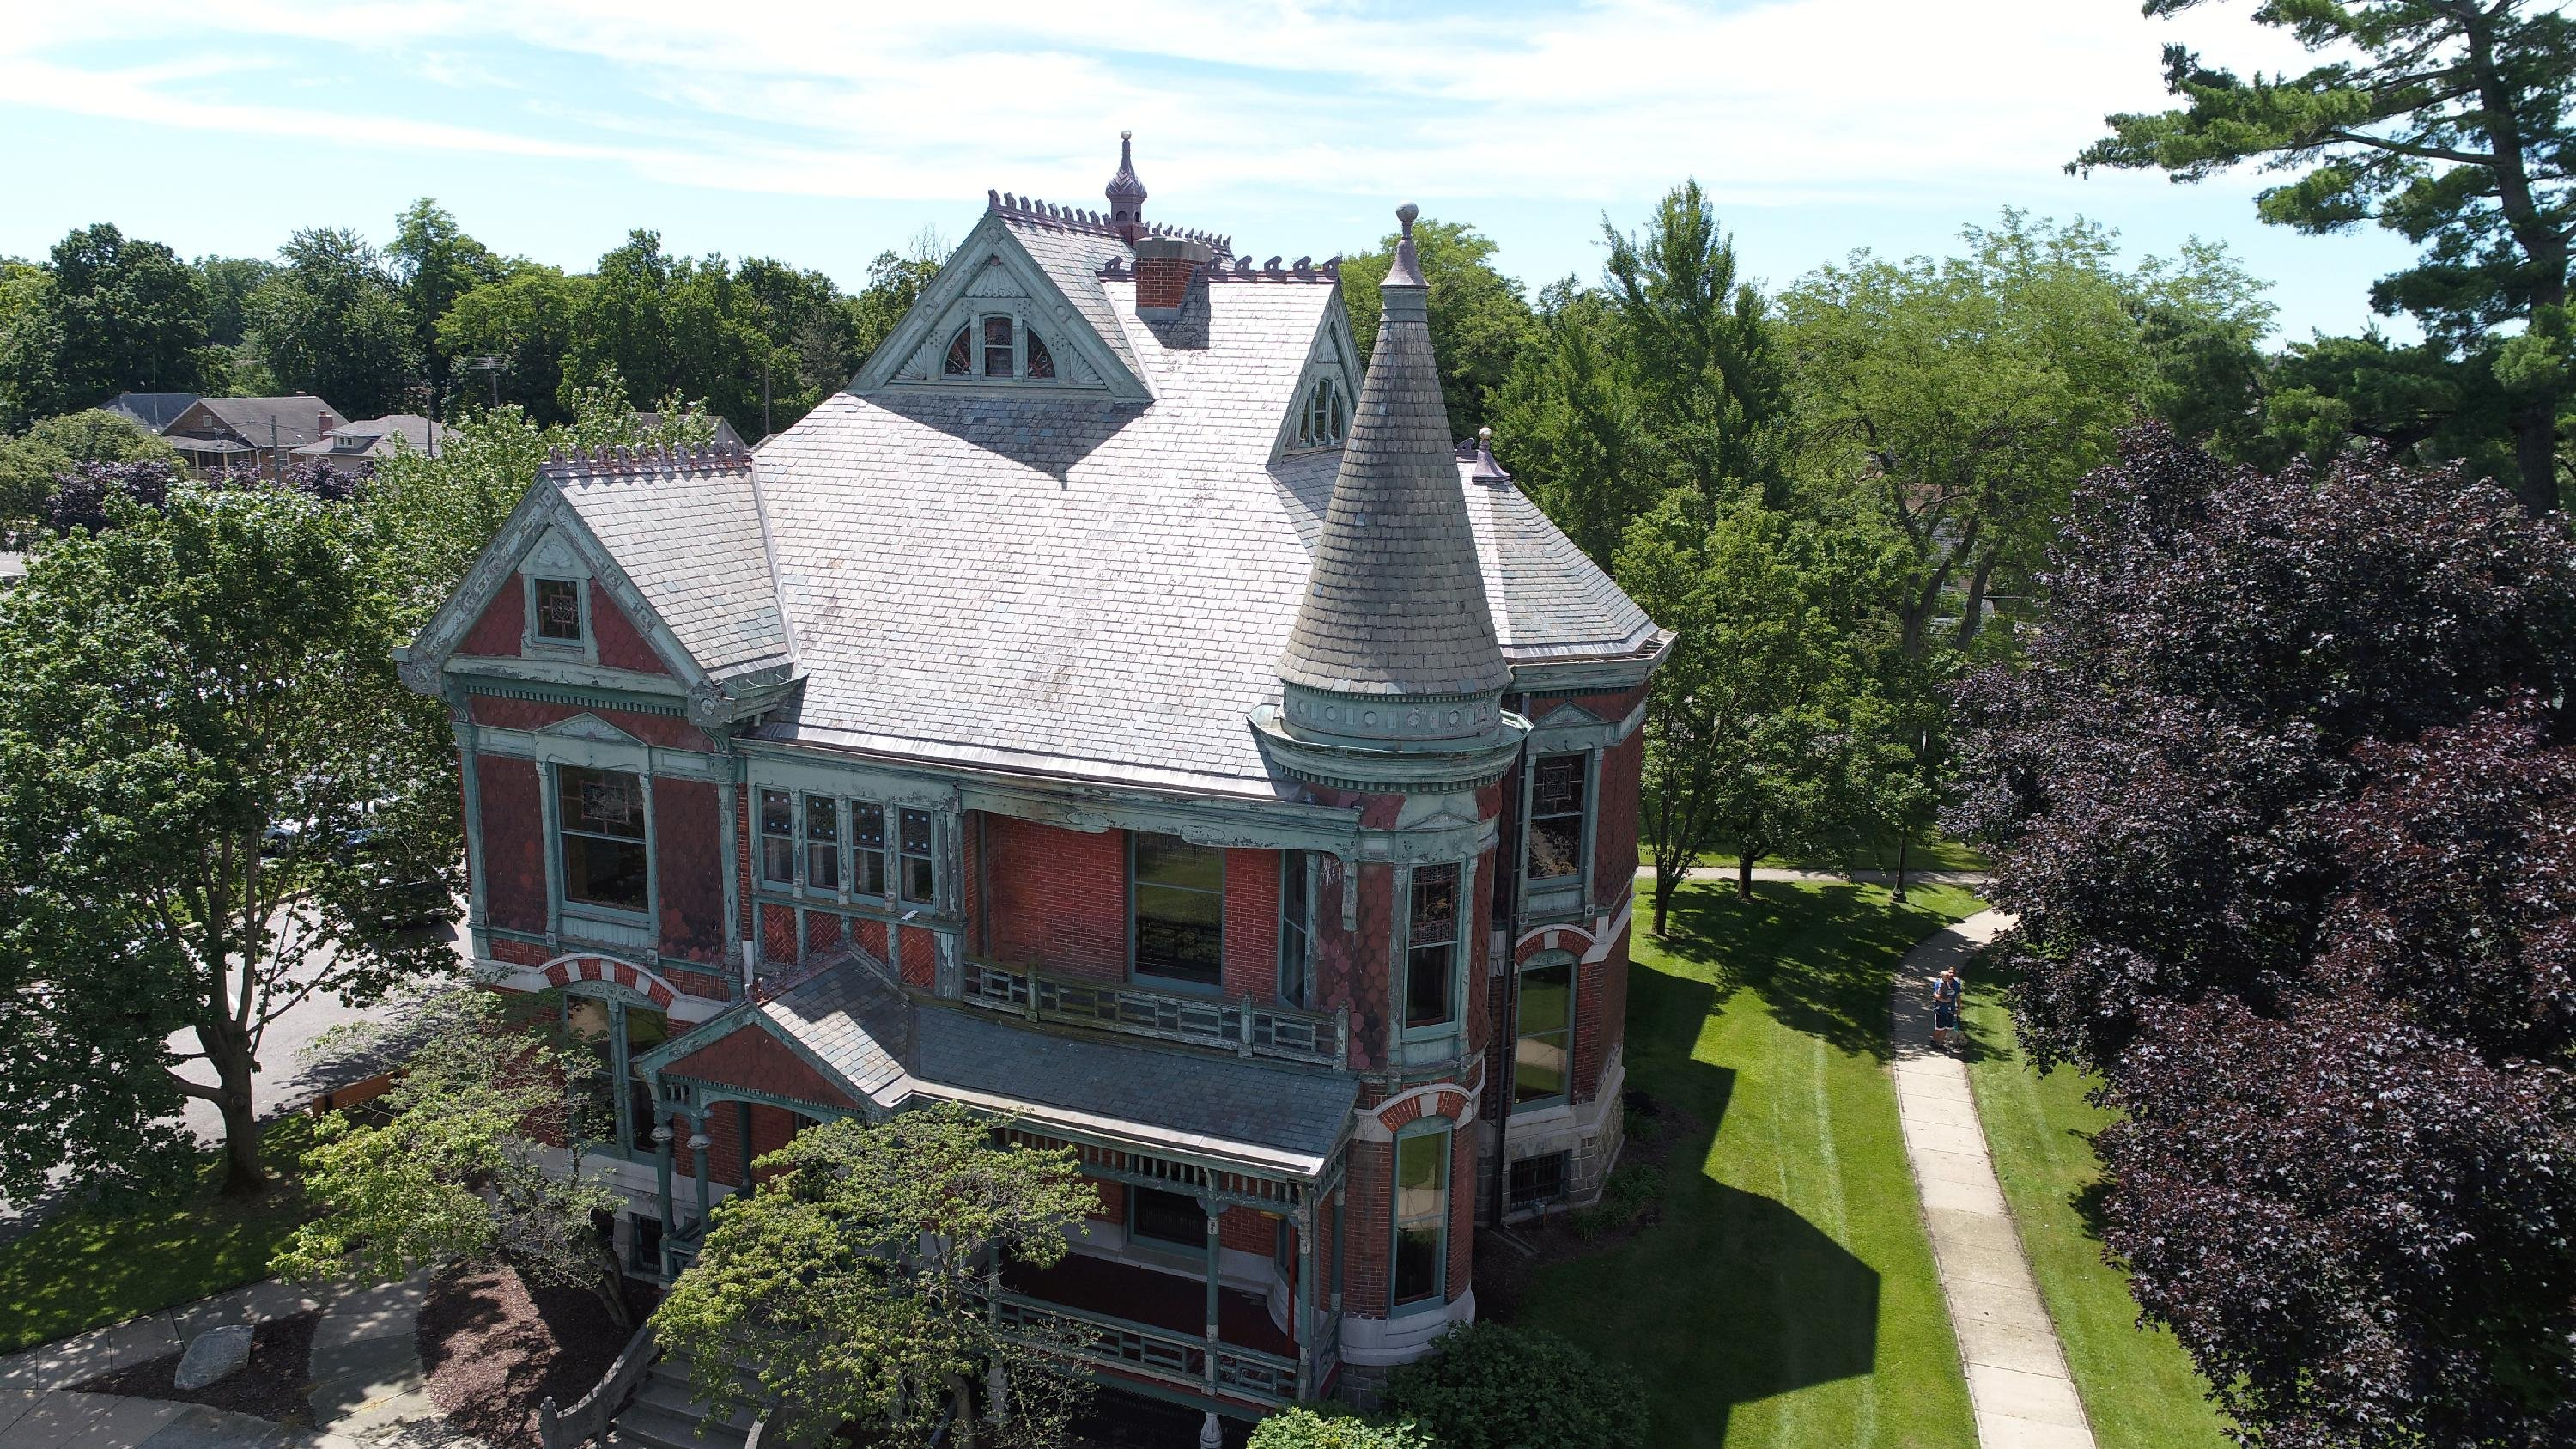 The Chapin House is a great example of Queen Anne architecture. Guided tours inside are offered on Fridays and Saturdays at 1pm.